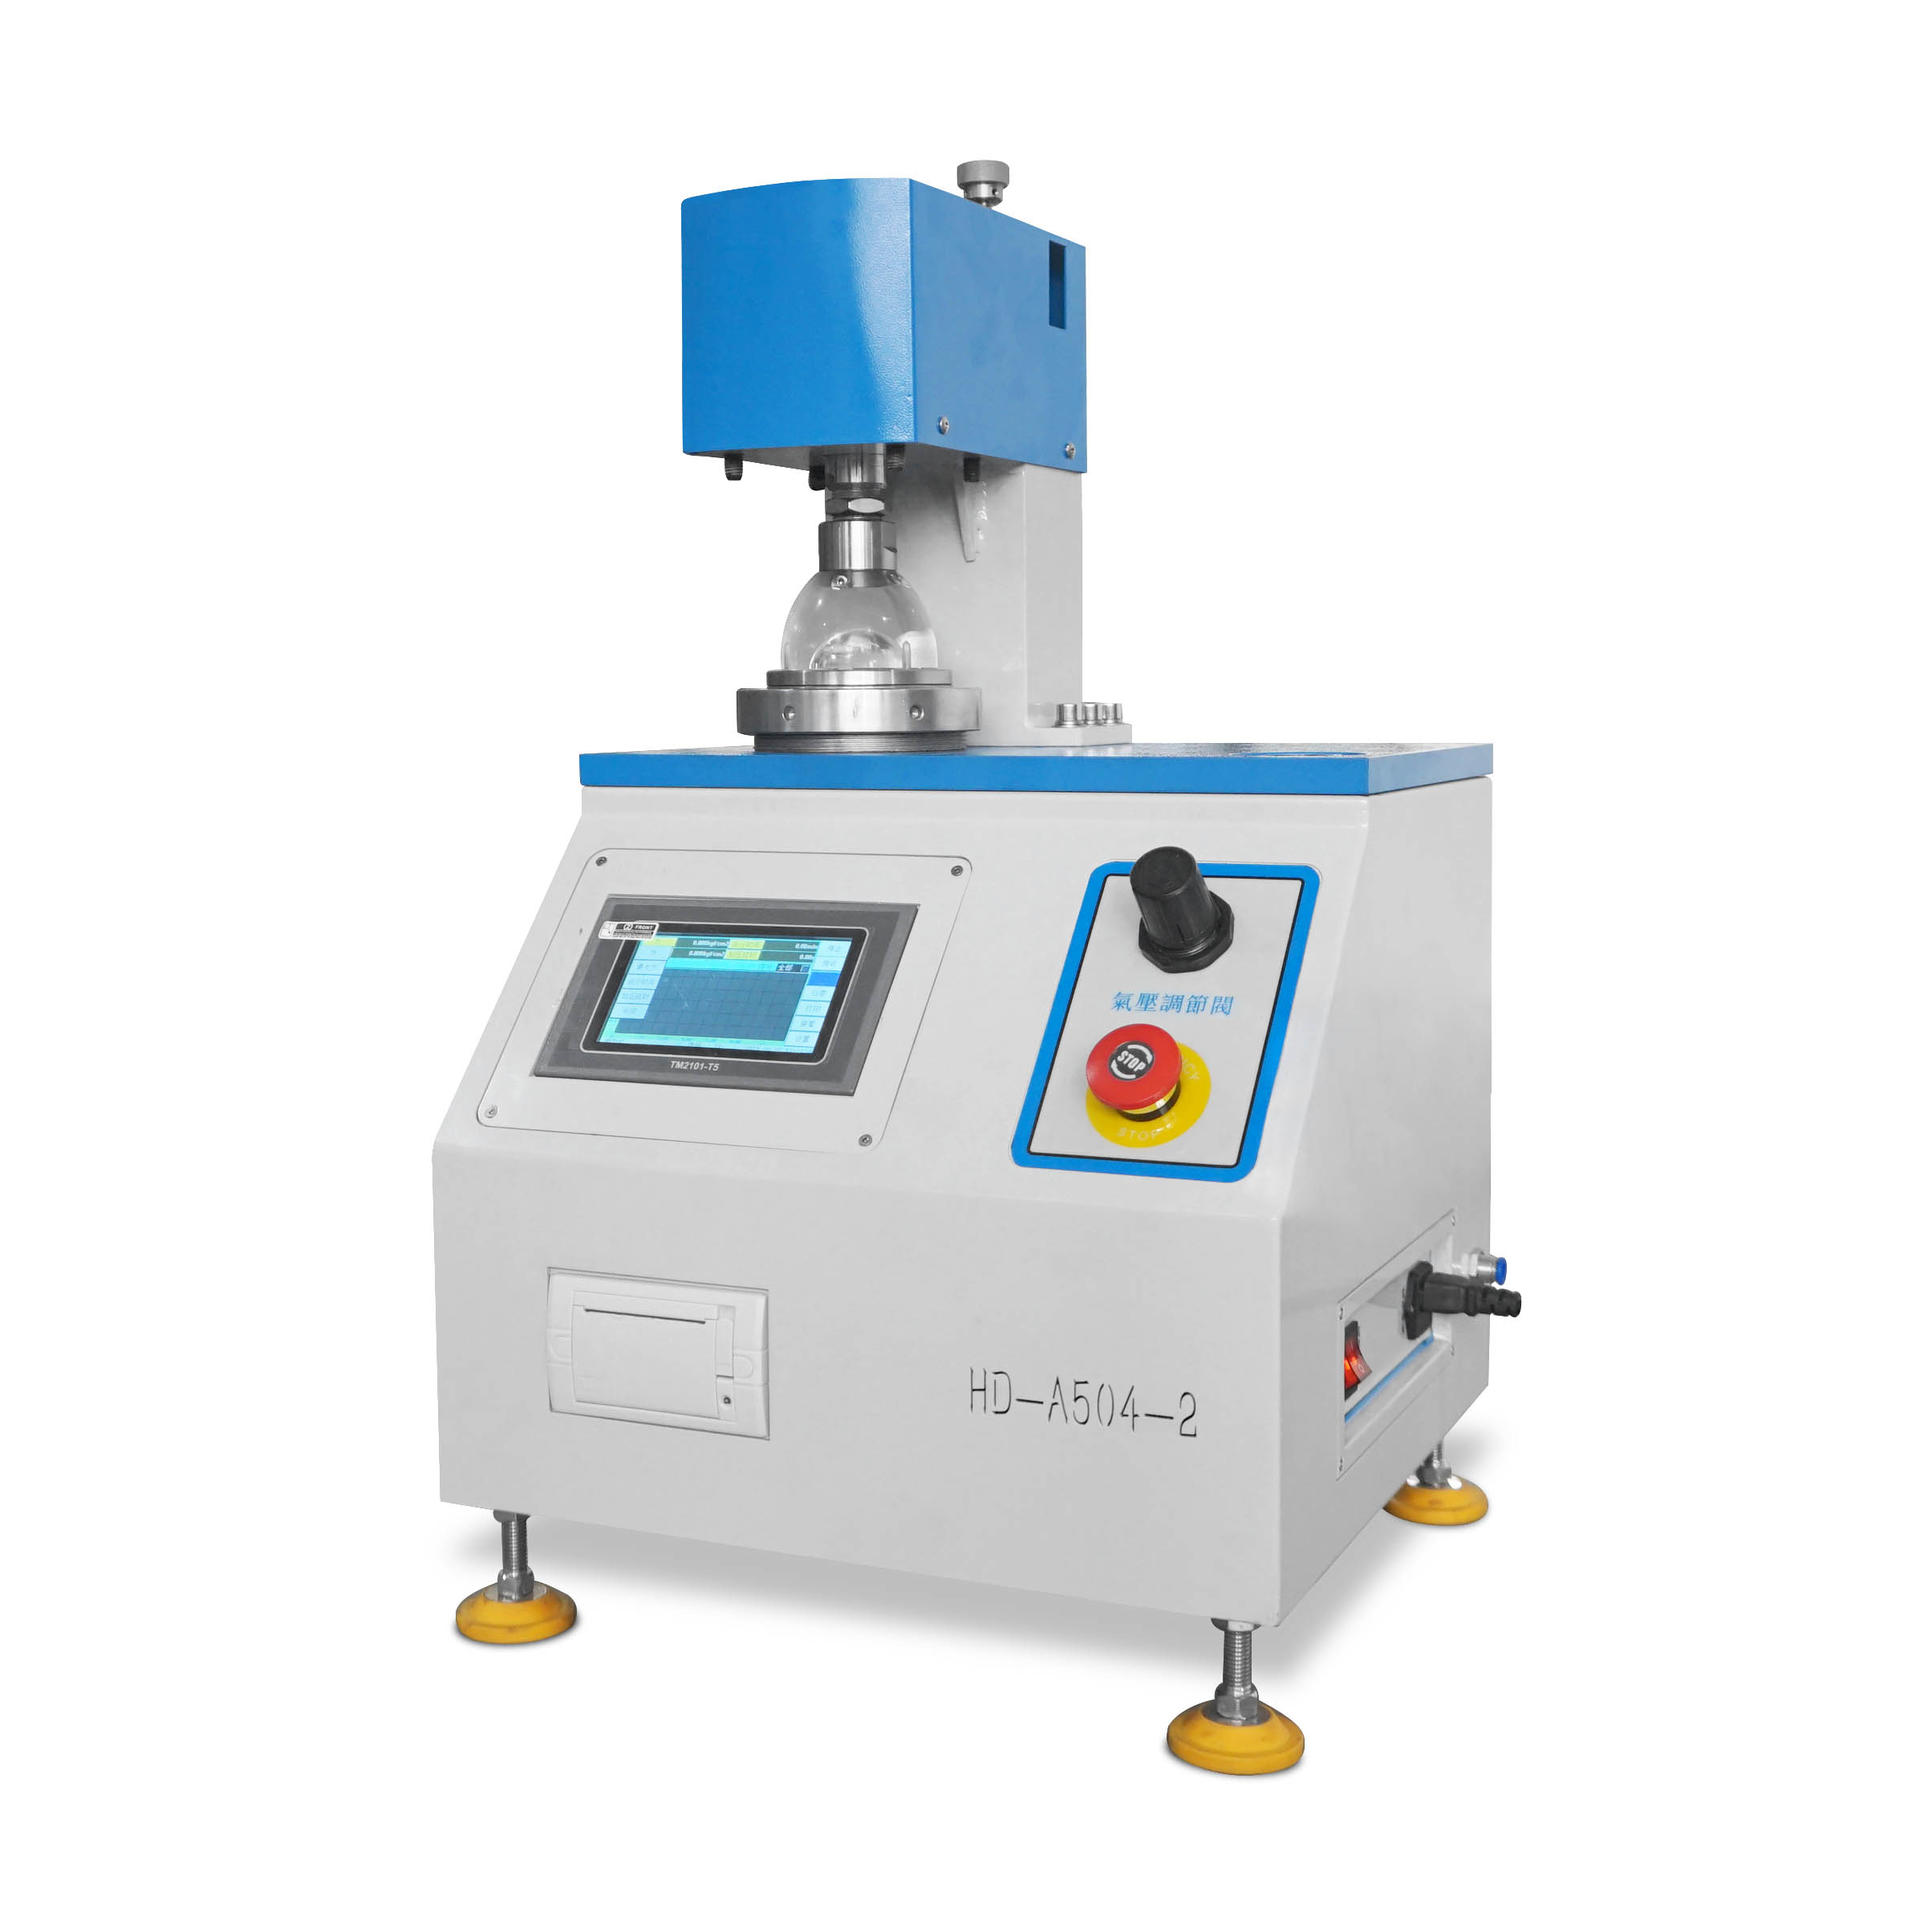 Corrugated Paper Bursting Strength Testing Machine HD-A504-2